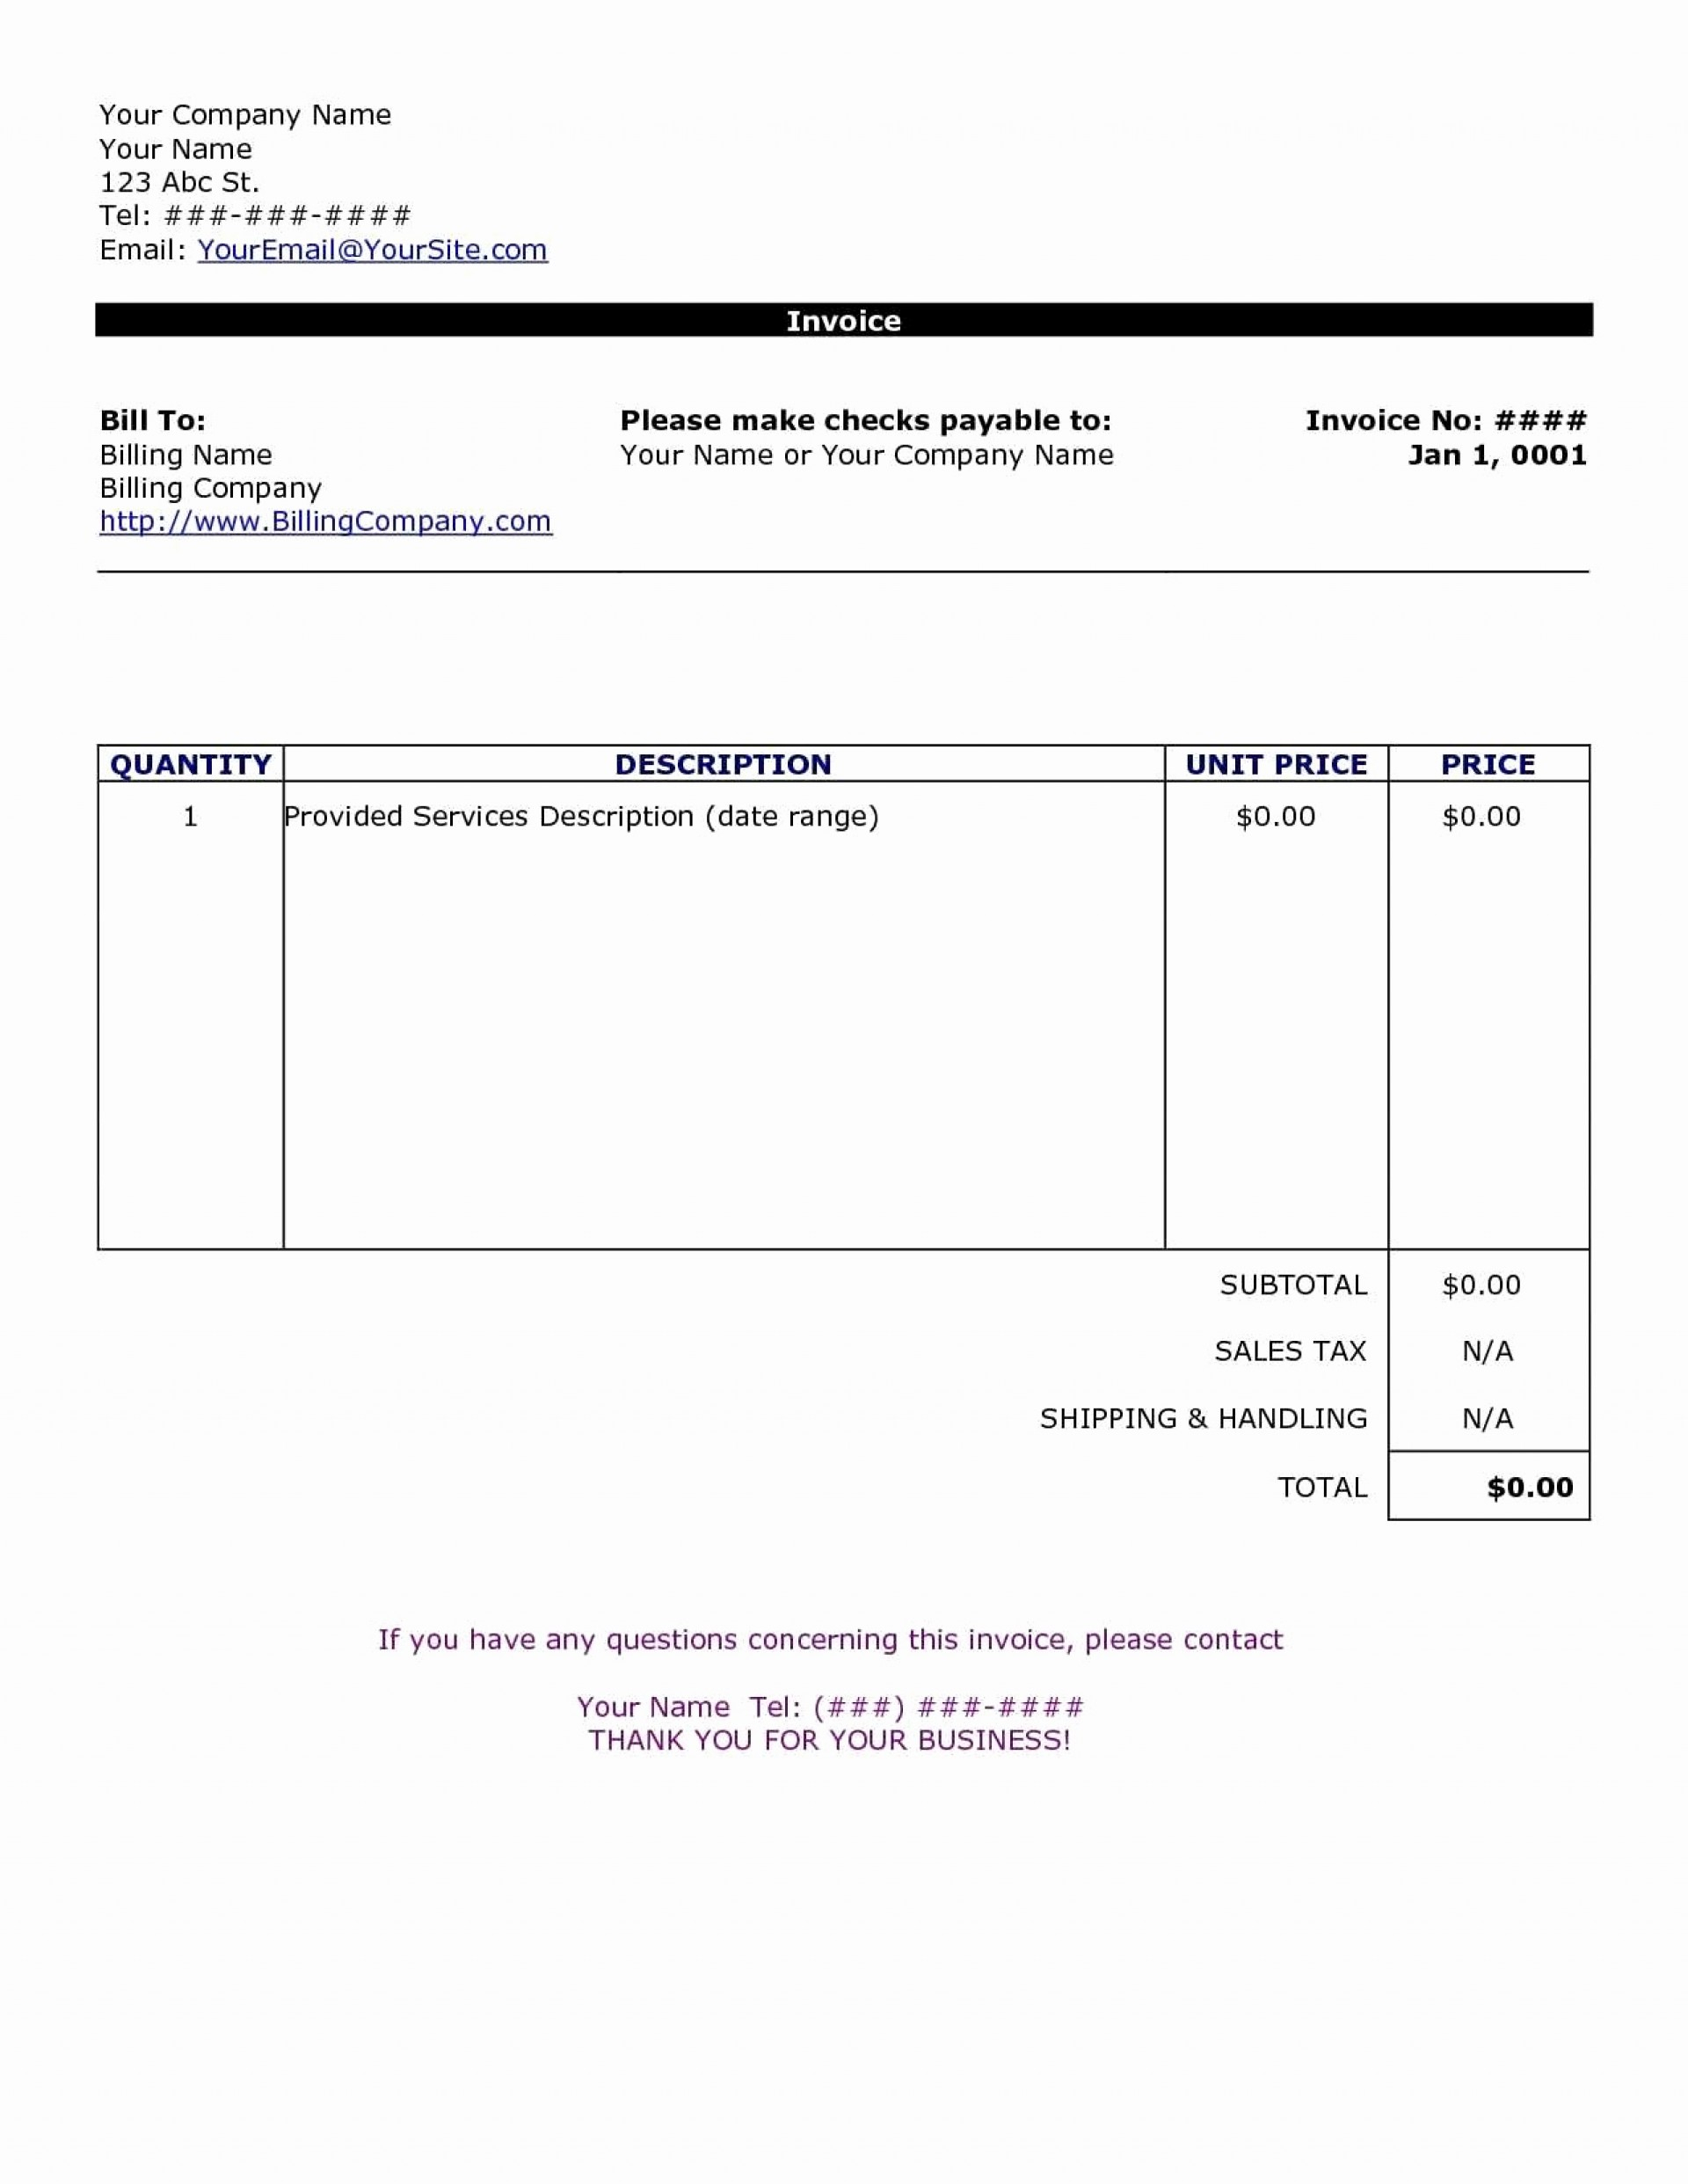 Mttr Calculation Spreadsheet For Availability Form Blog Fearsome Templates Template Calculation Mtbf